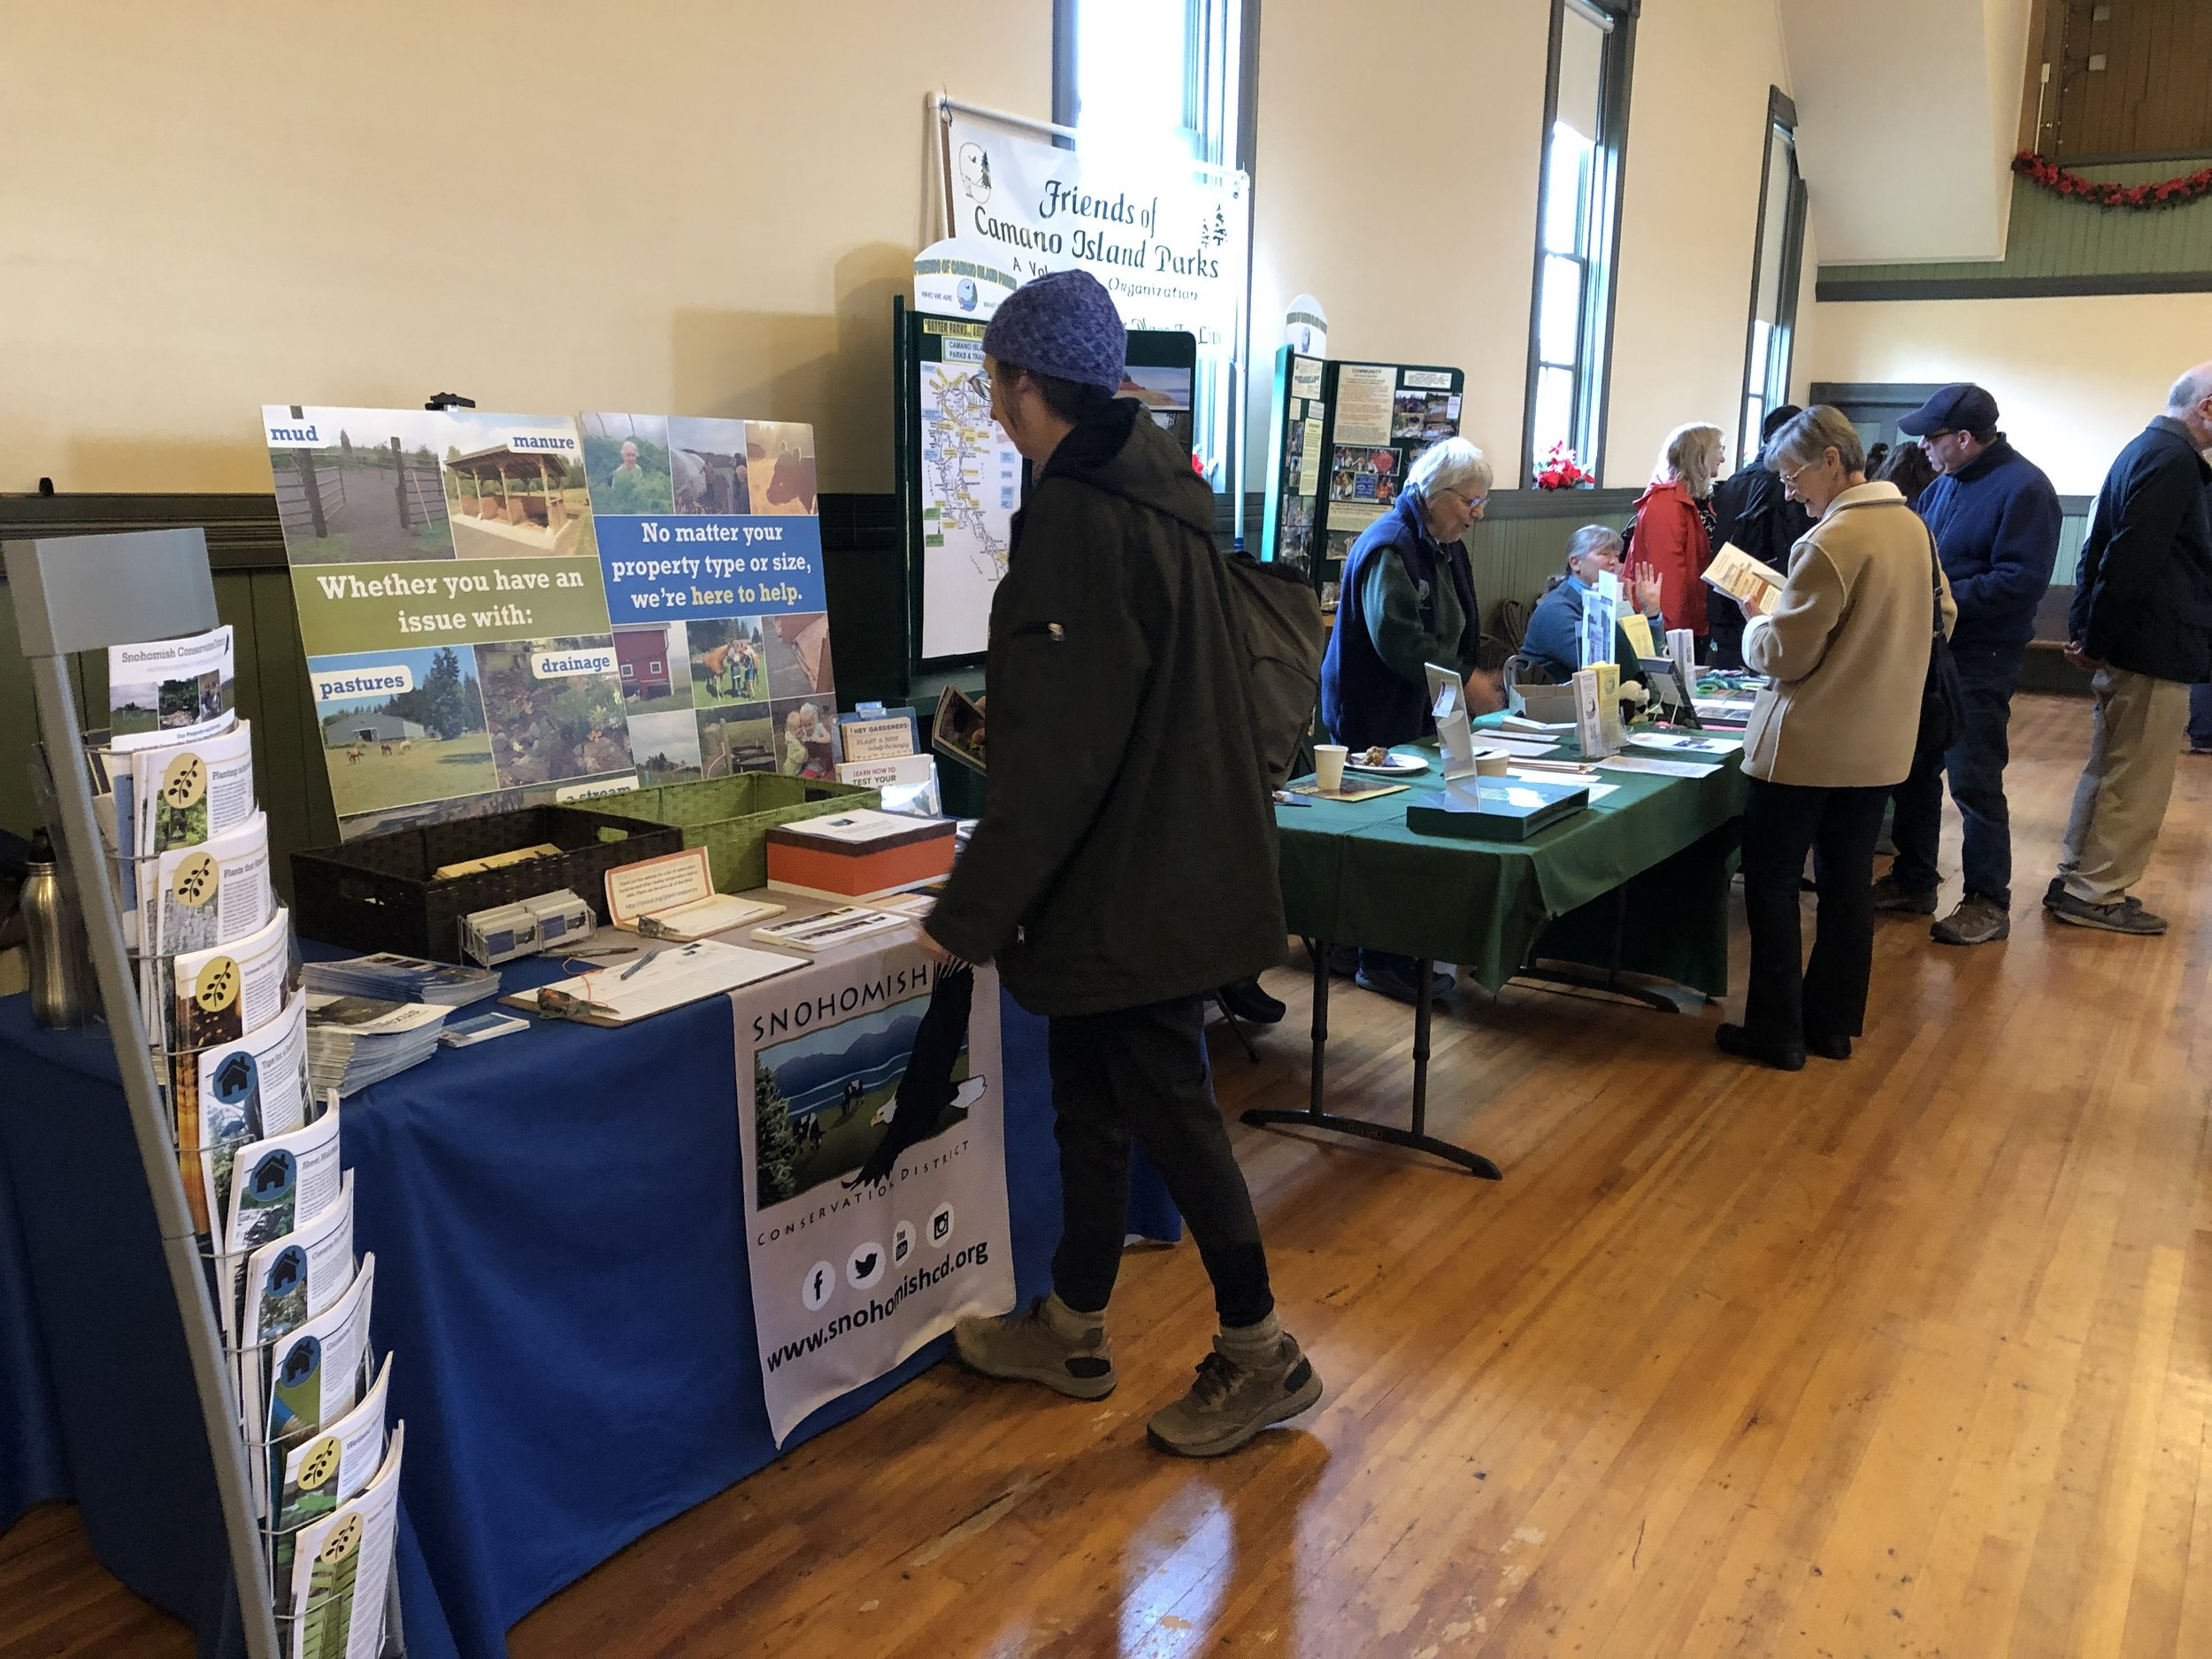 FOCIP and Camano Wildlife Habitat Project's tables were next to SCD's table